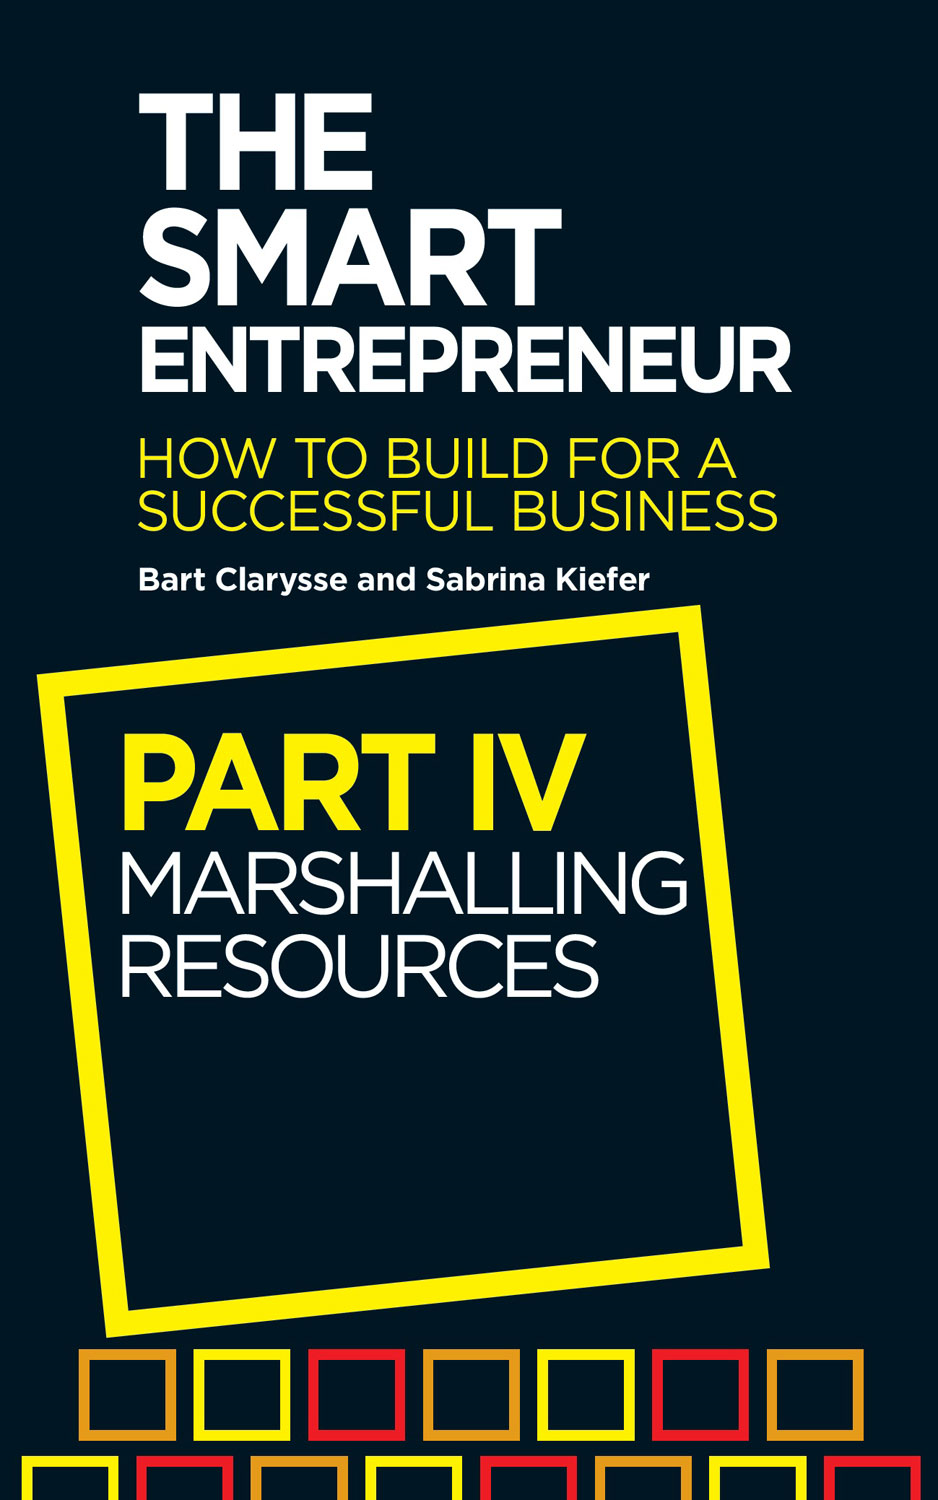 The Smart Entrepreneur: Part IV: Marshalling Resources